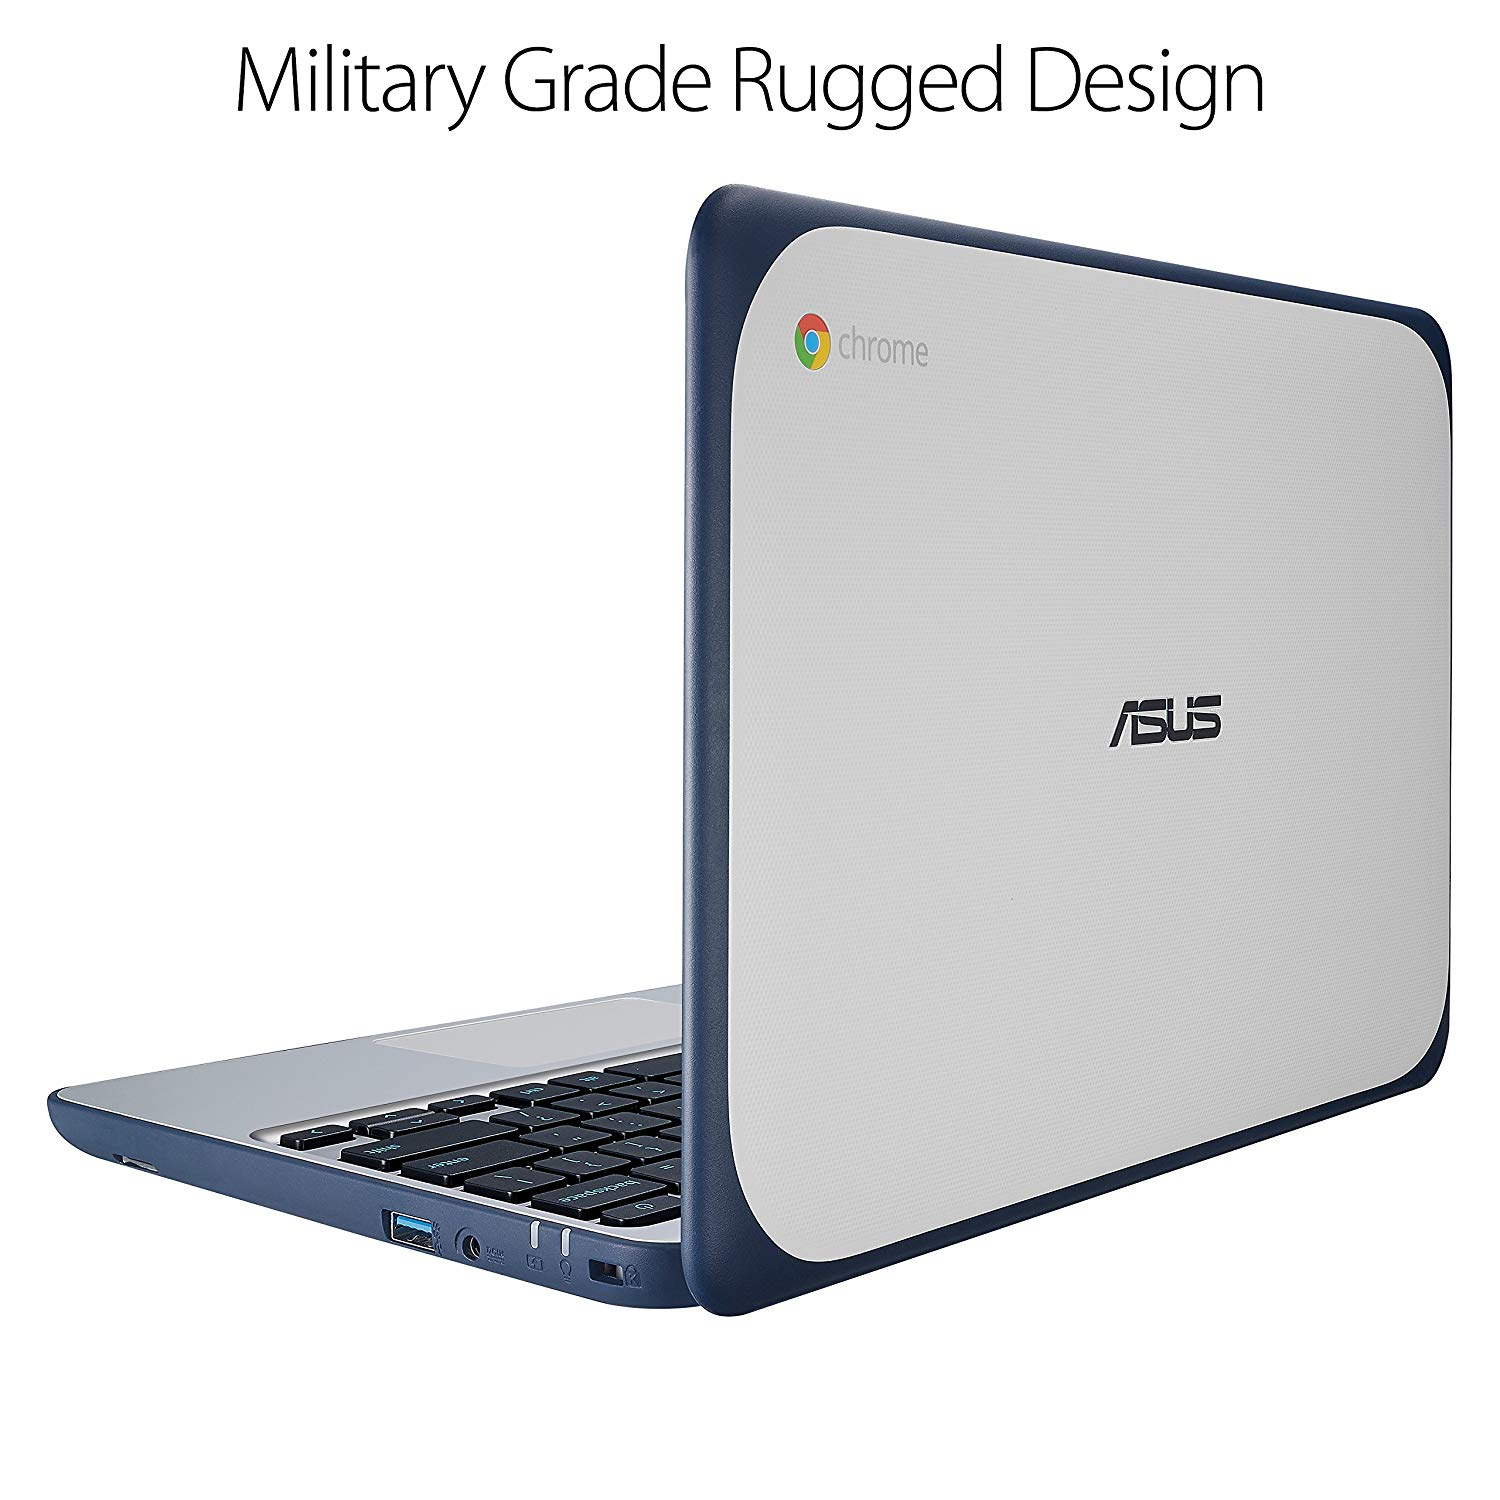 "ASUS Chromebook C202SA-YS01 11.6"" Ruggedized and Spill Resistant Keyboard Design with 180 Degree Hinge (Intel Celeron 2GB, 16GB eMMC, Dark Blue)"